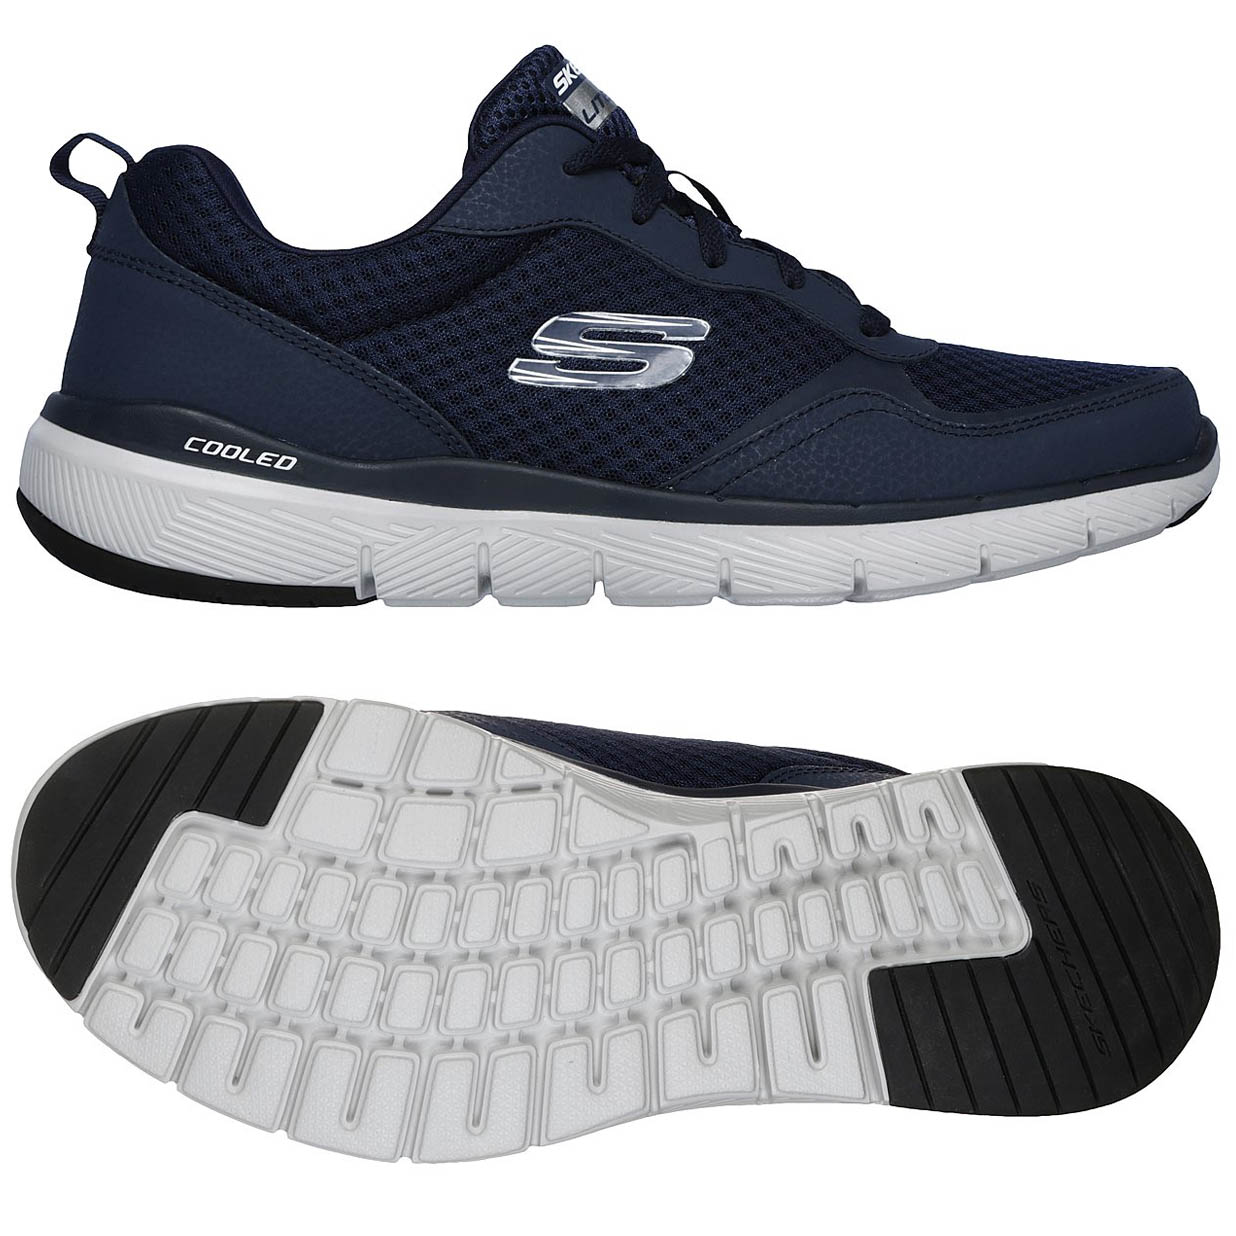 Skechers Flex Advantage 3.0 Mens Training Shoes - Navy, 11 UK